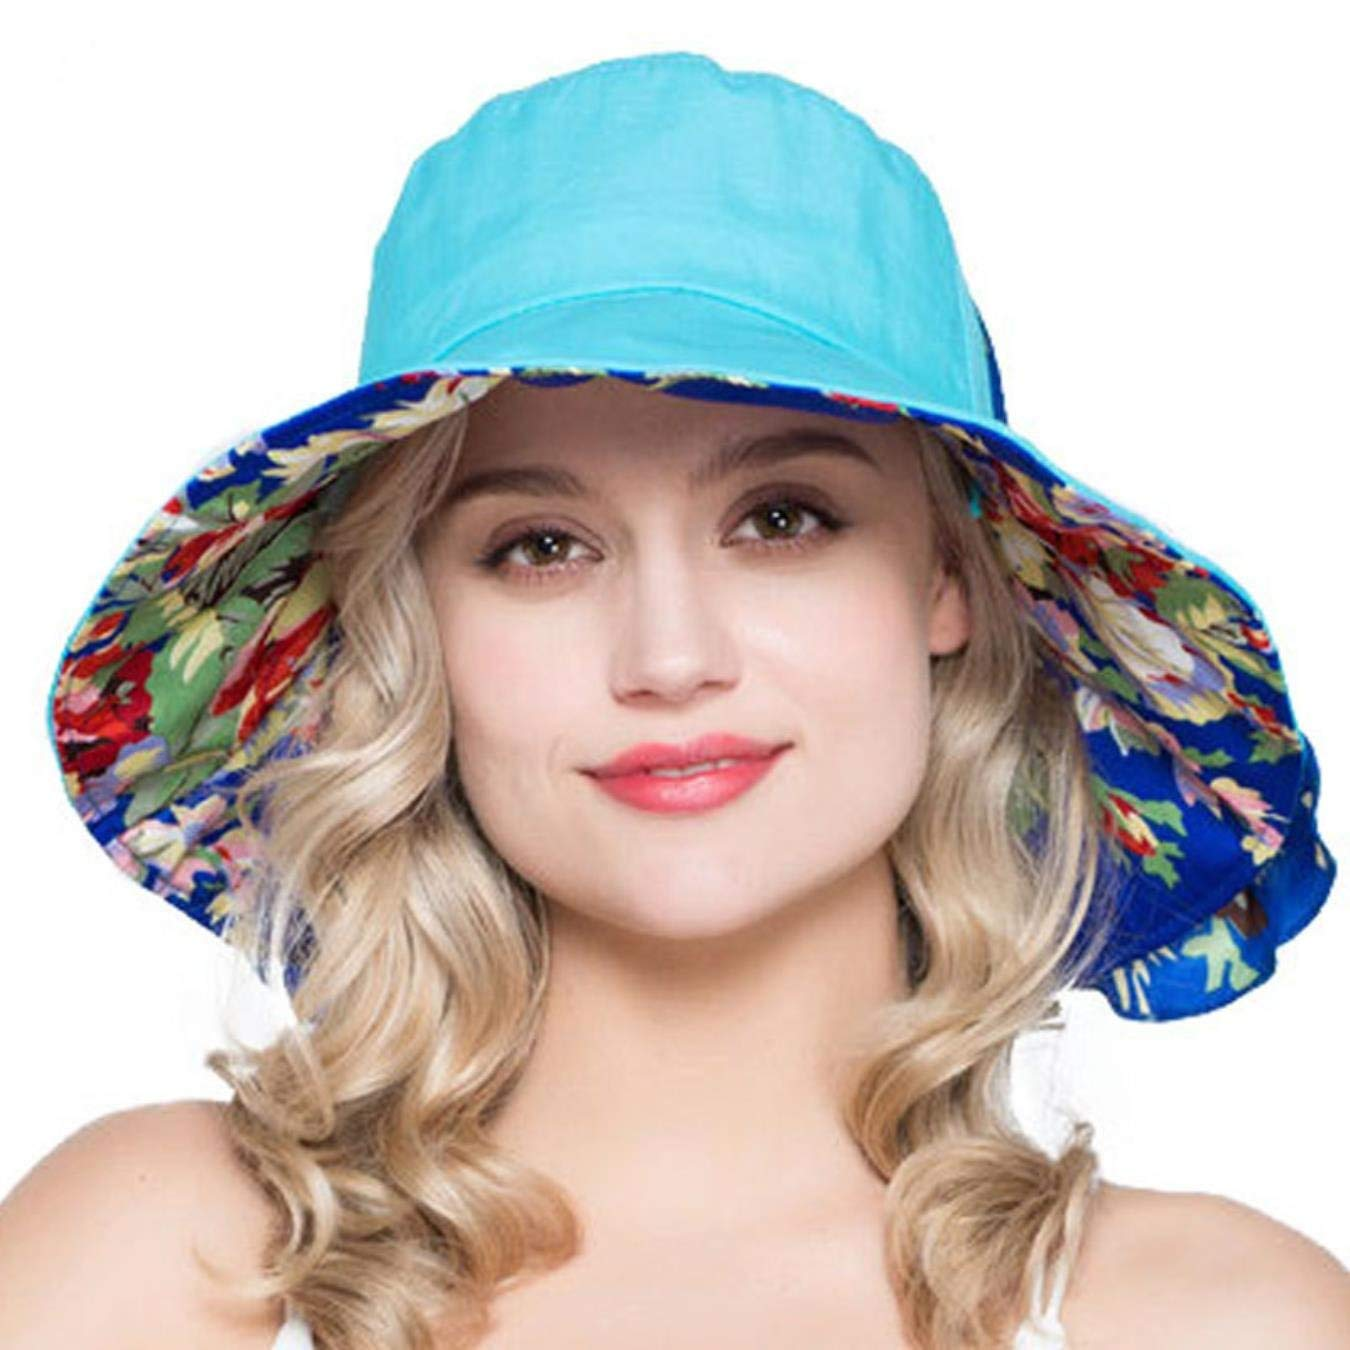 db0bb455d16 Get Quotations · Fashion Hats Ladies Summer Wide Brim UV Sunhat Women Hats  for Beach Holidays Floppy Sun Hats